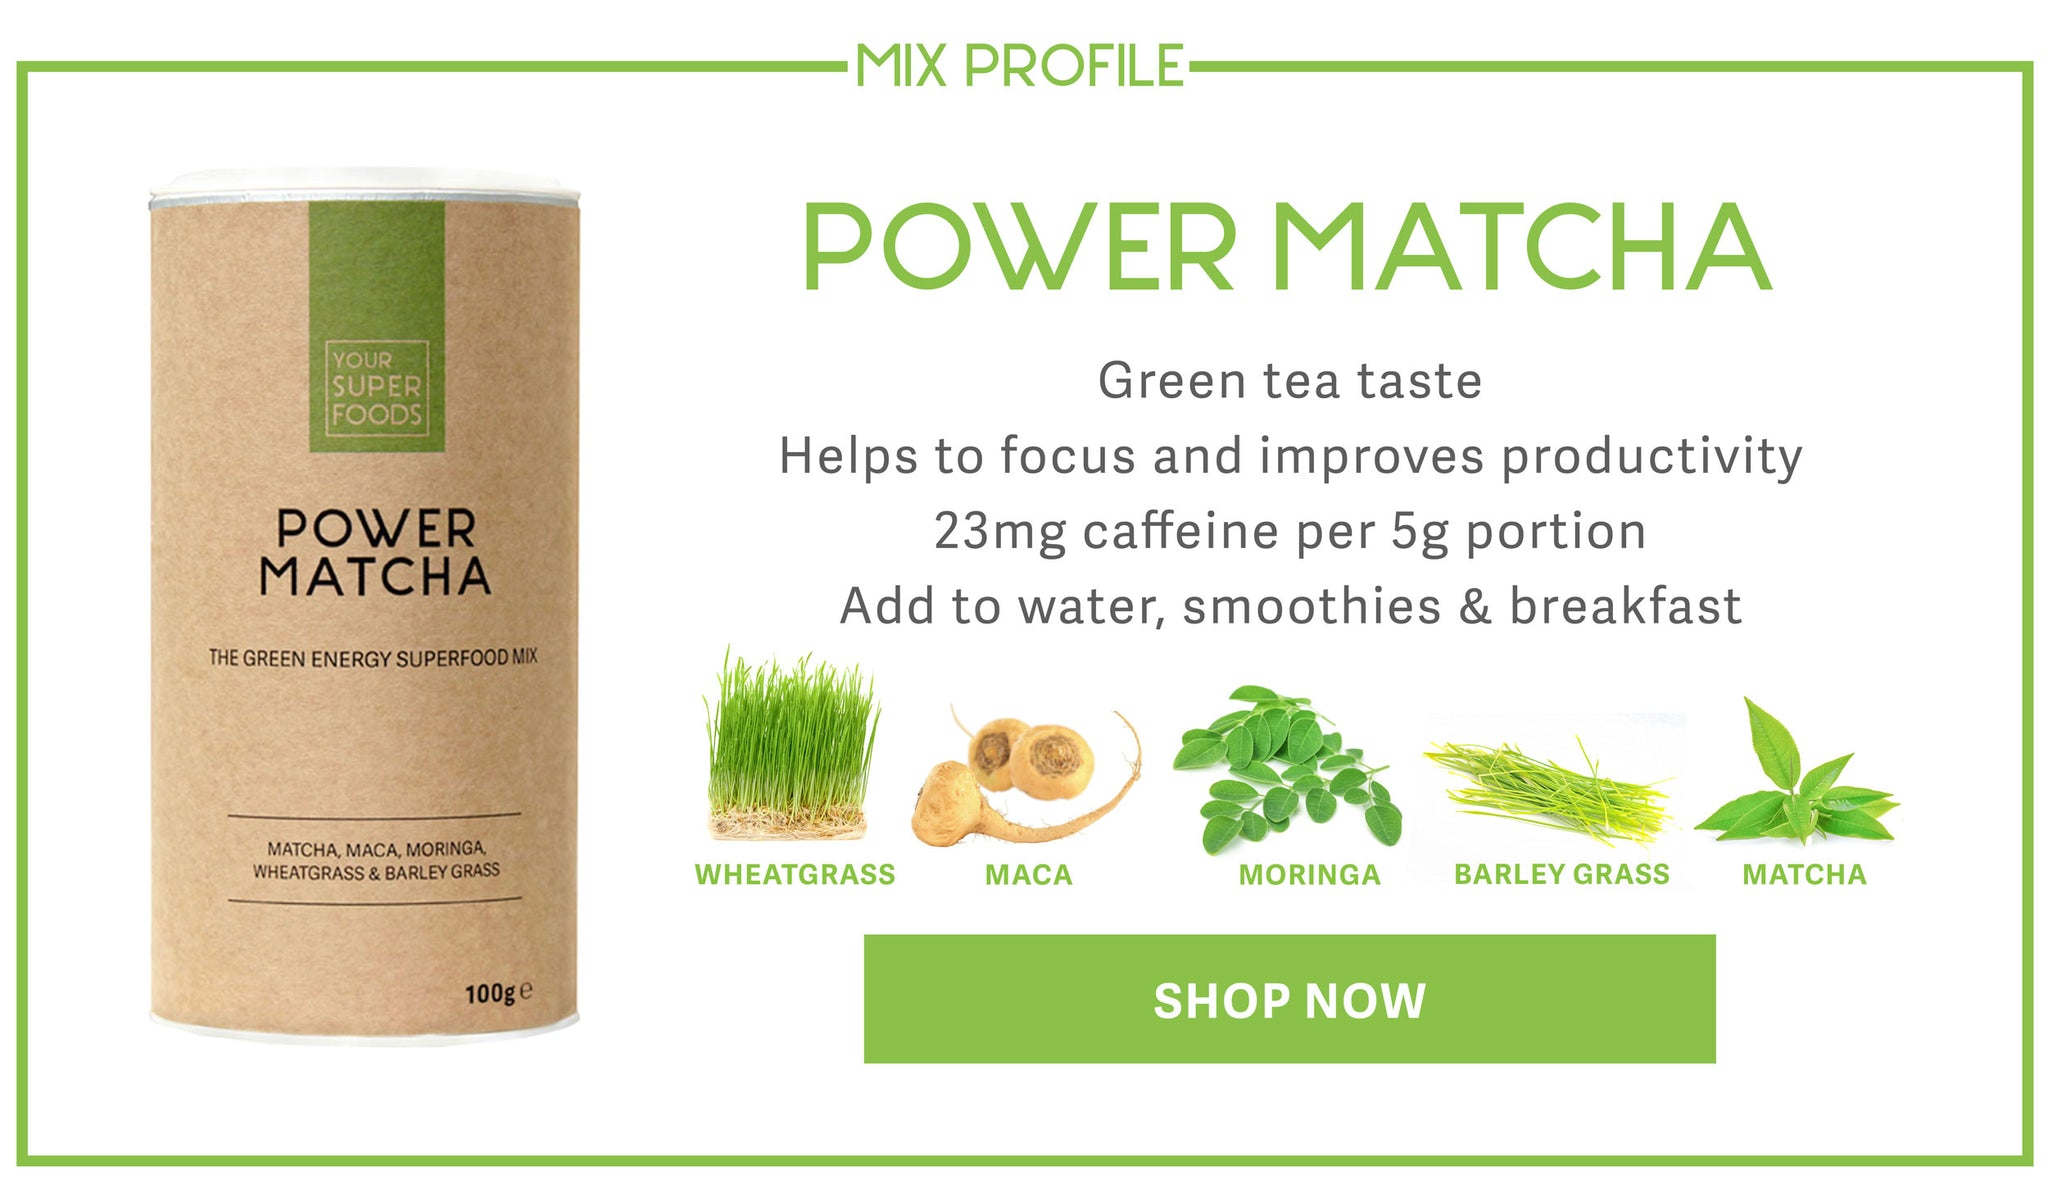 Power Matcha Mix Profile